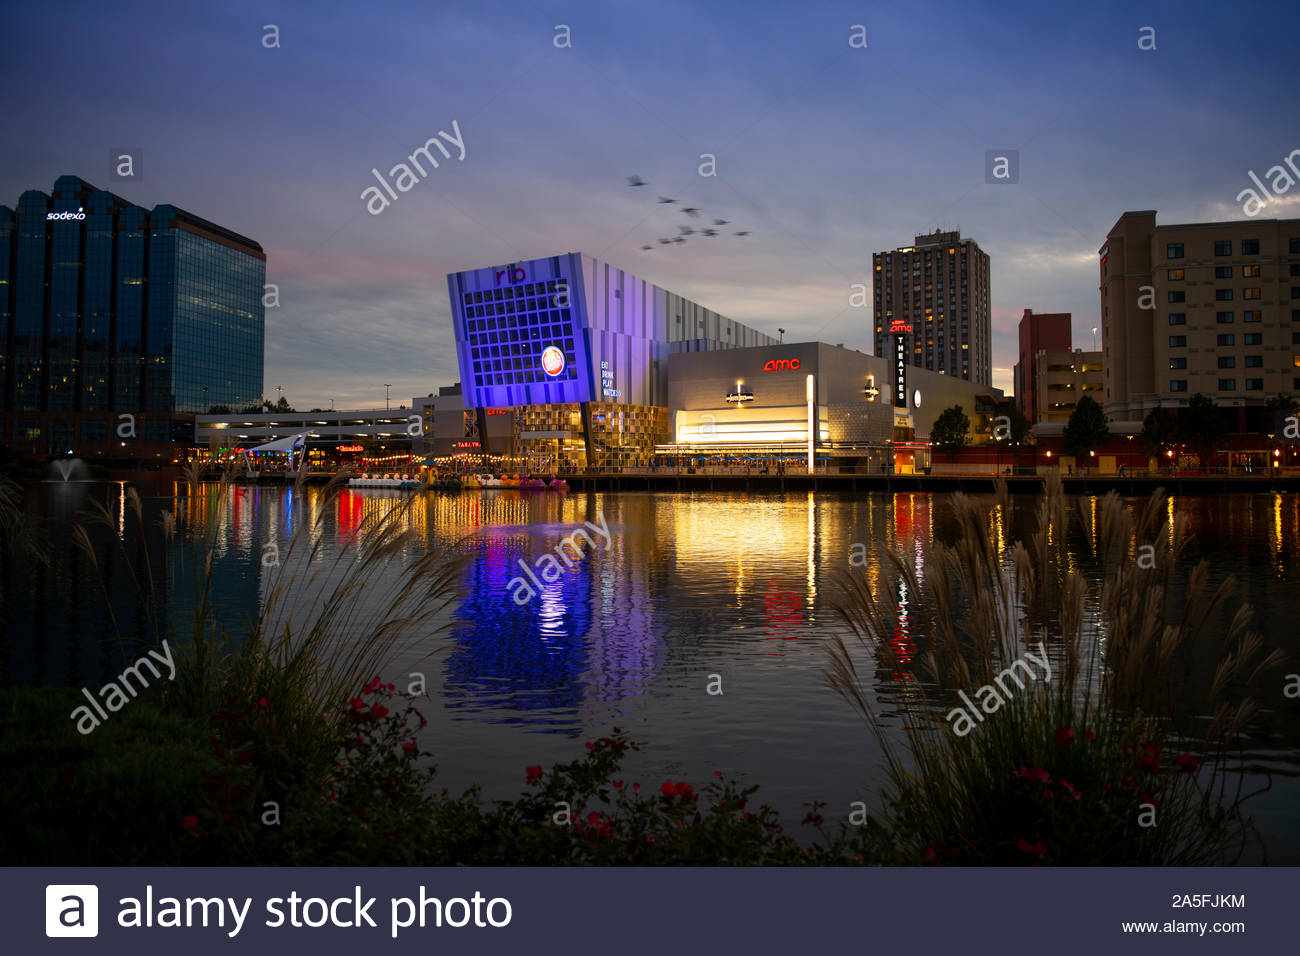 usa-maryland-md-montgomery-county-gaithersburg-rio-at-washingtonian-center-with-shopping-dining-movies-entertainment-by-a-lake-2A5FJKM.jpg